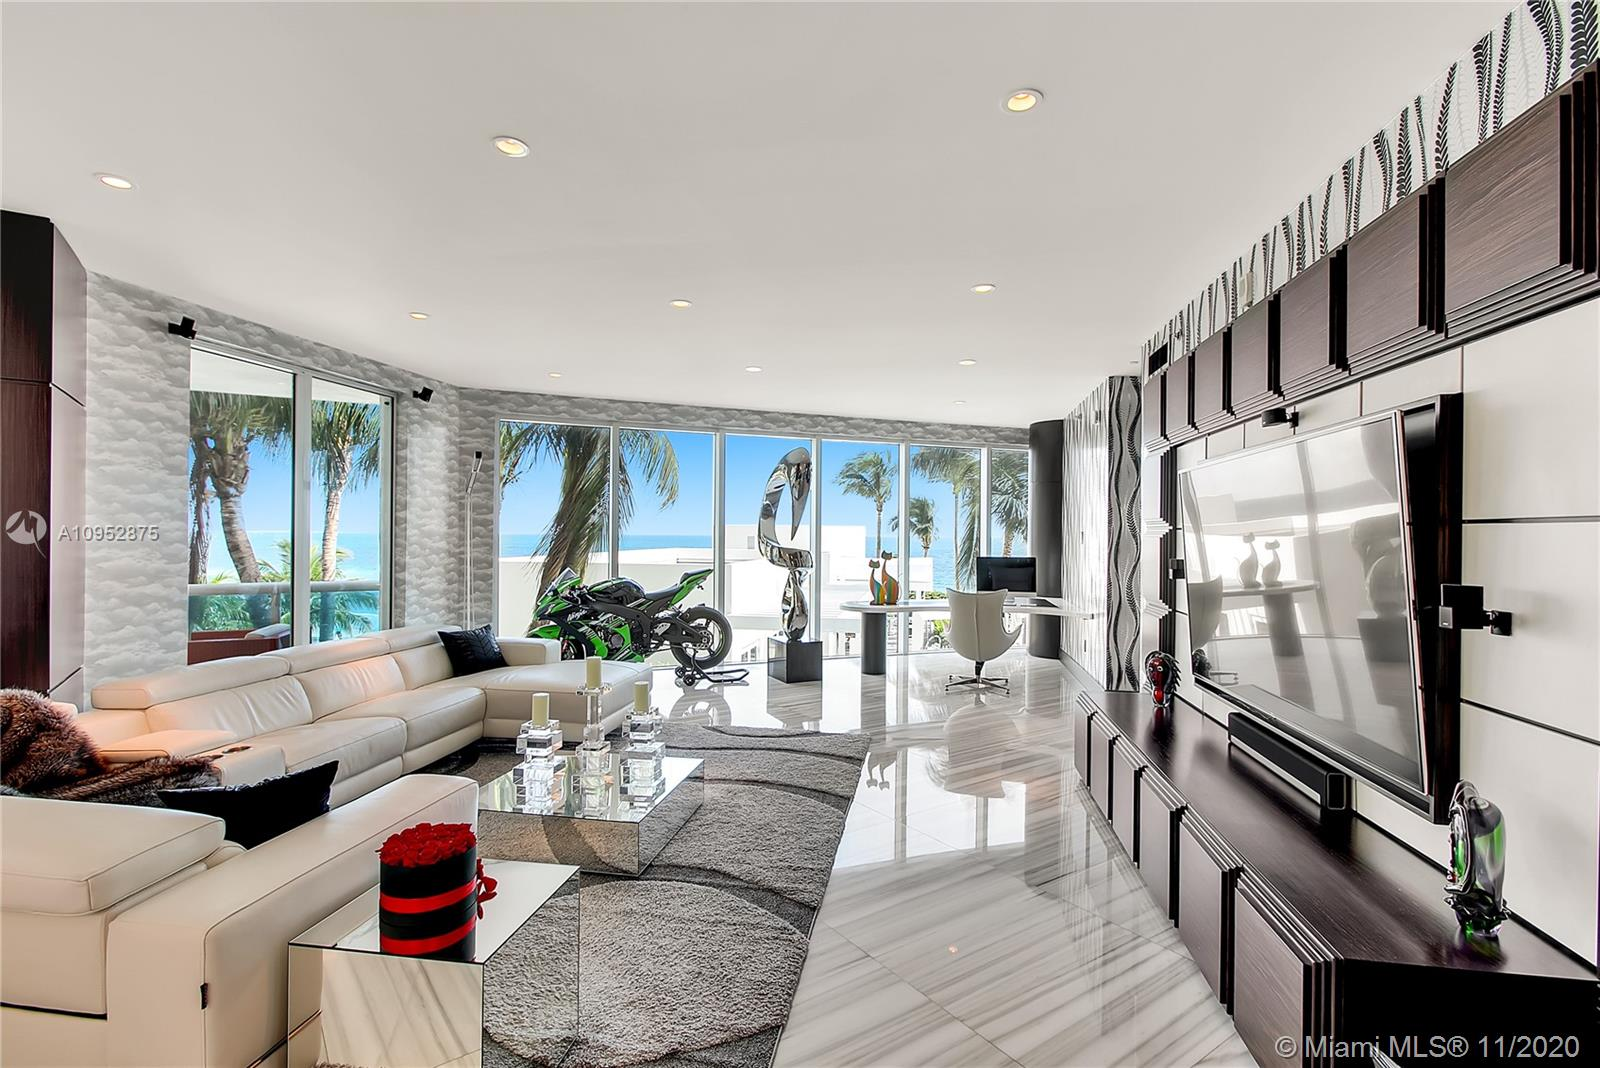 """Wow! The Crown Jewel of Luxurious Trump Hollywood! Beach Lanai w/ Private Deck Overlooking the Beach w/ Private Jacuzzi. Over a Million $ in New Renovated 3 Beds - 2 Story Showplace! Ocean Views Throughout! Contemporary Masterpiece! Finest Finishes: Smart system,48"""" White Marble Flrs, Custom Doors, Lutron + Murano Italian Glass Lighting, Theatre/ Nightclub w/ Lazers, Lights, Smoke Machine and Sound System & Custom Alligator Couch! Fabulous Art! Nothing Original Remains!  Walk Out to Pool! Special Rare Residence with All The Privacy of a House and Amenities of a Condo - Stunning! Exquisite Lobby, Unsurpassed Amenities incl. Breakfast Rm, Wine + Cigar Lounges, Fitness Center, Tennis, Spa, Massage Rms, Theater, Party Rm, Caterer's Kitchen, Pool + Beach Service, 24 hr Security, Valet, & more!"""